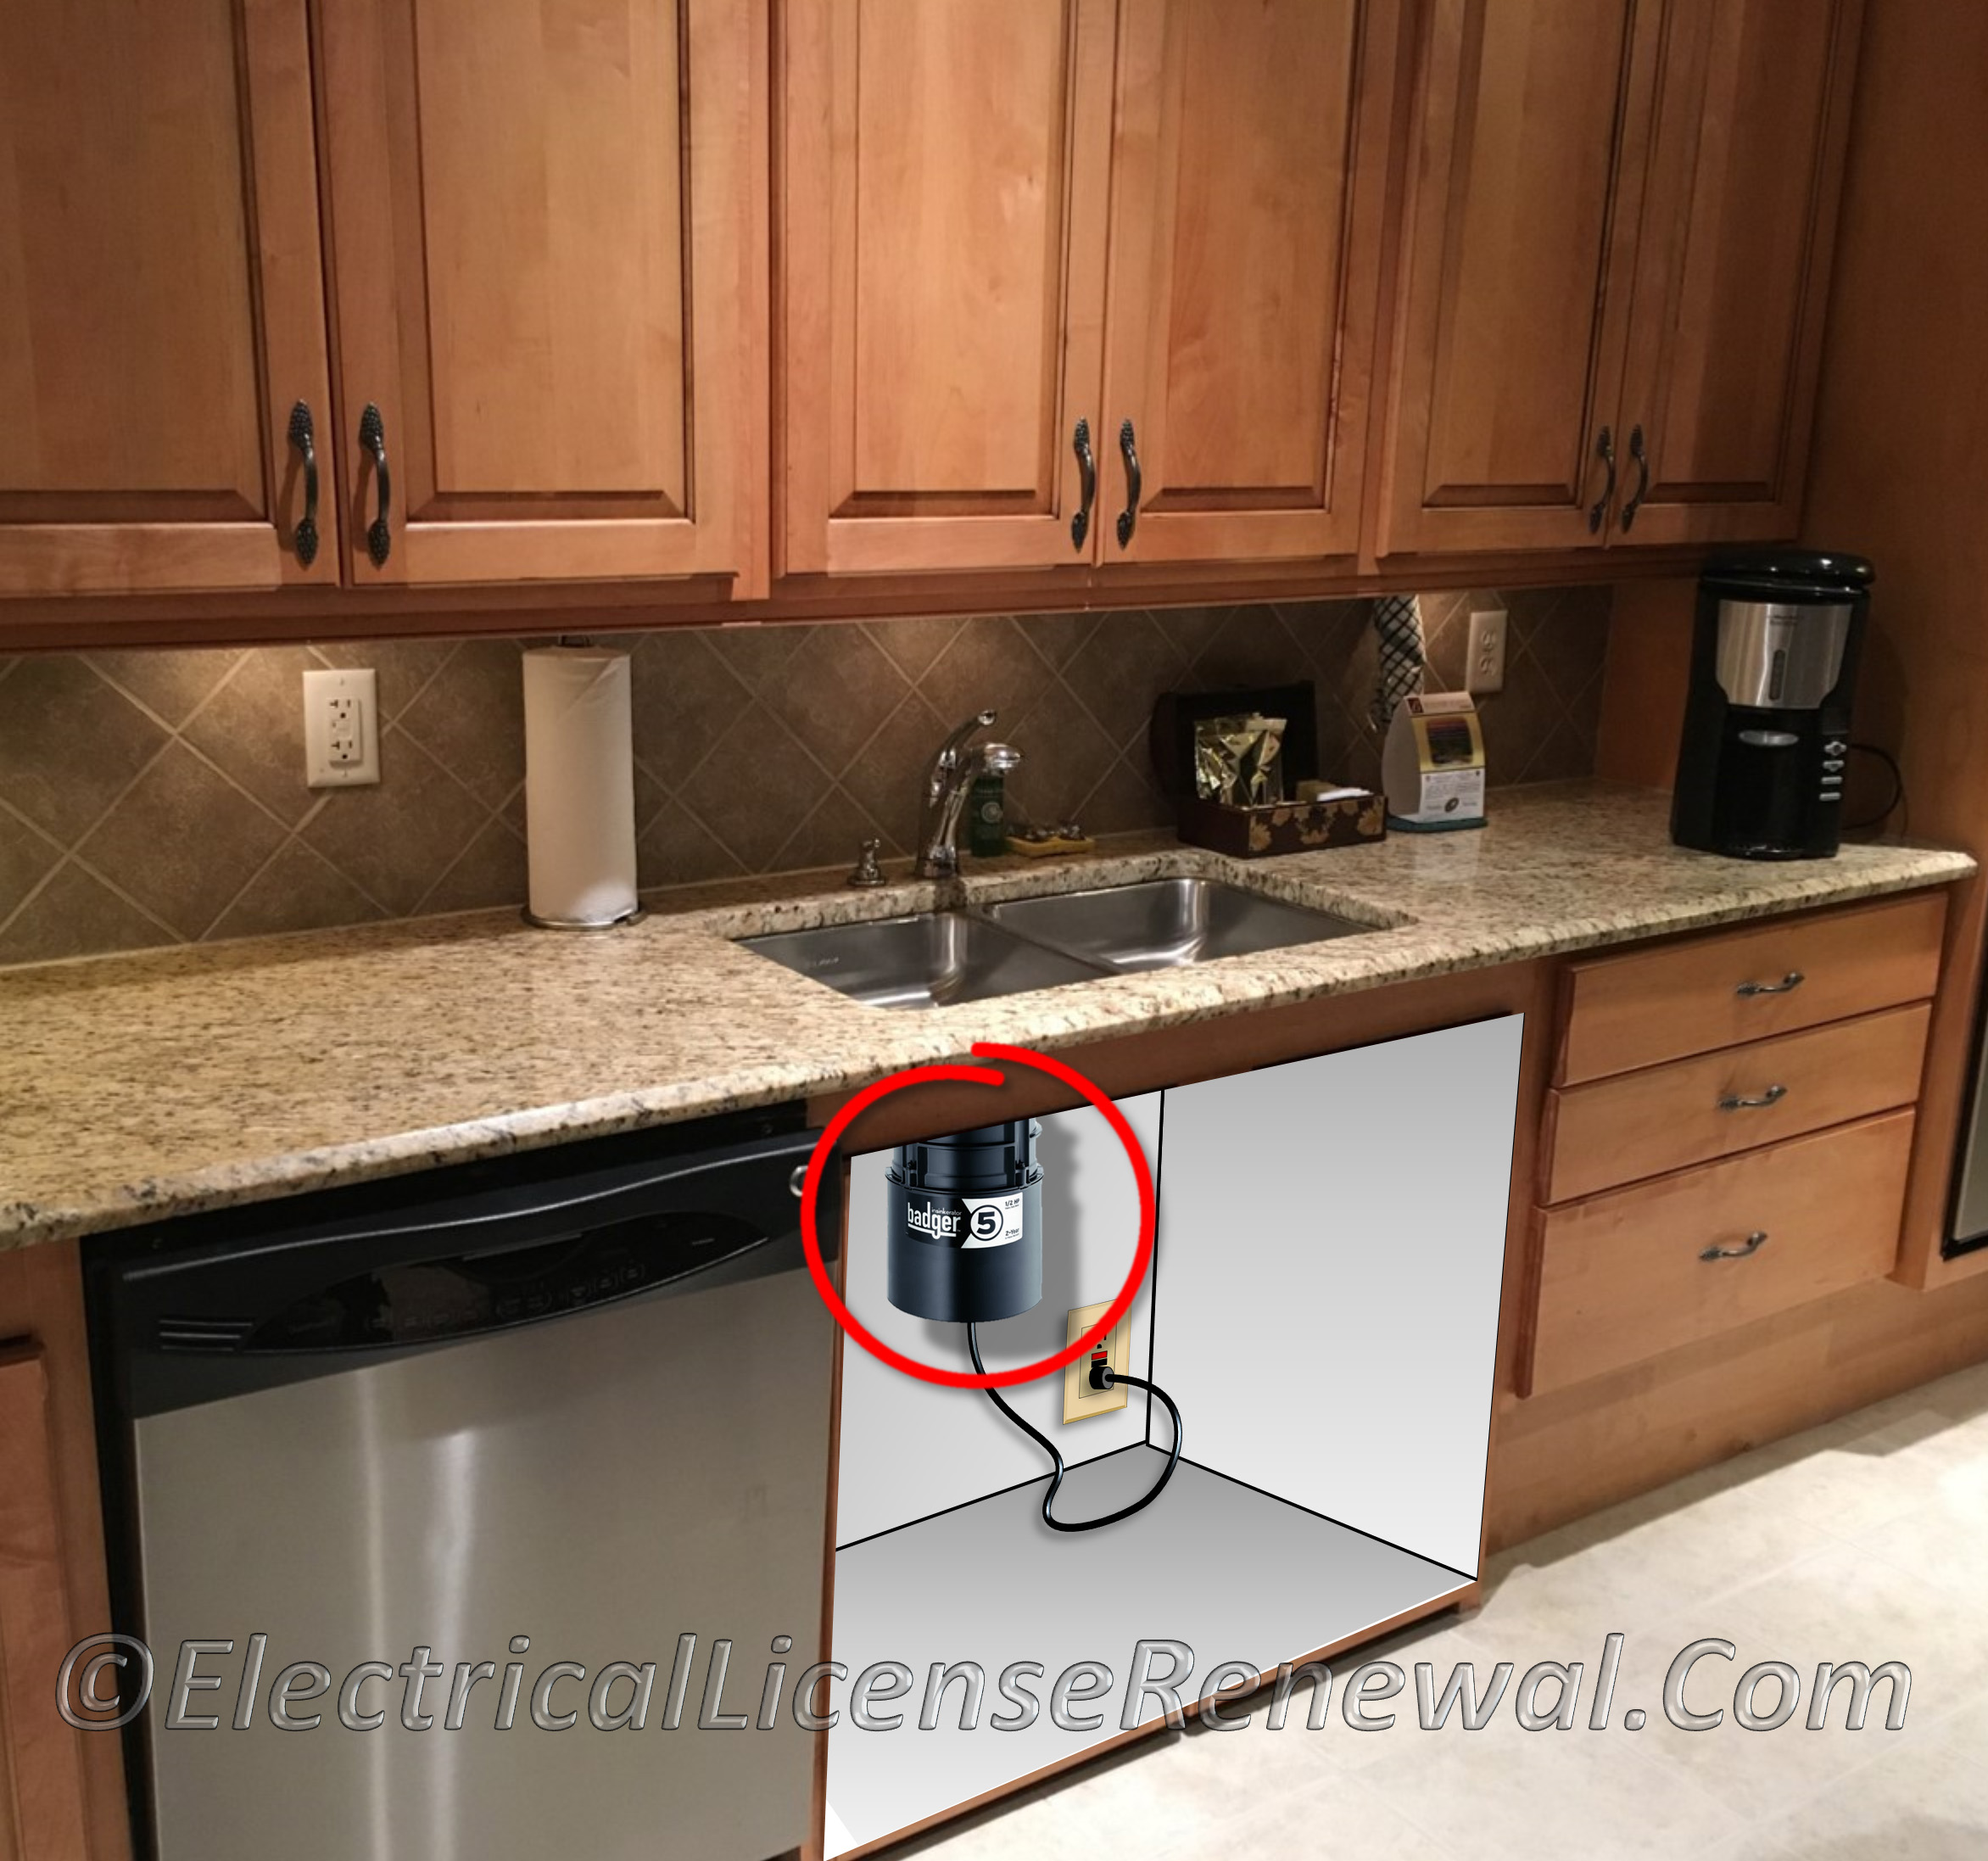 422.16(B)(1) Appliances. Electrically Operated In-Sink Waste Disposers.